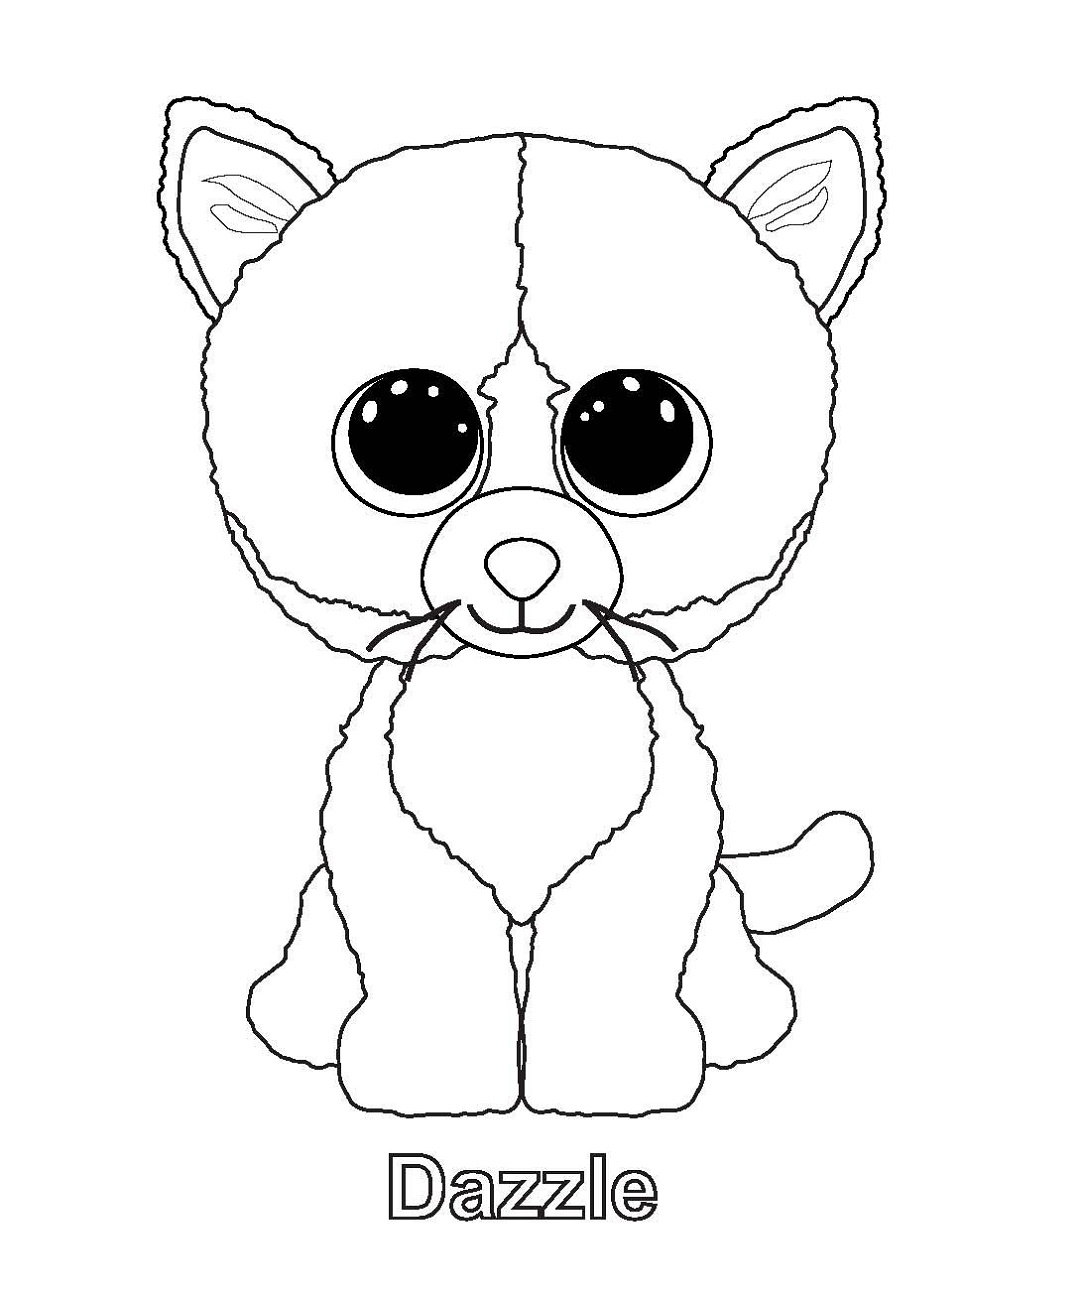 Beanie Boo Coloring Pages Dazzle